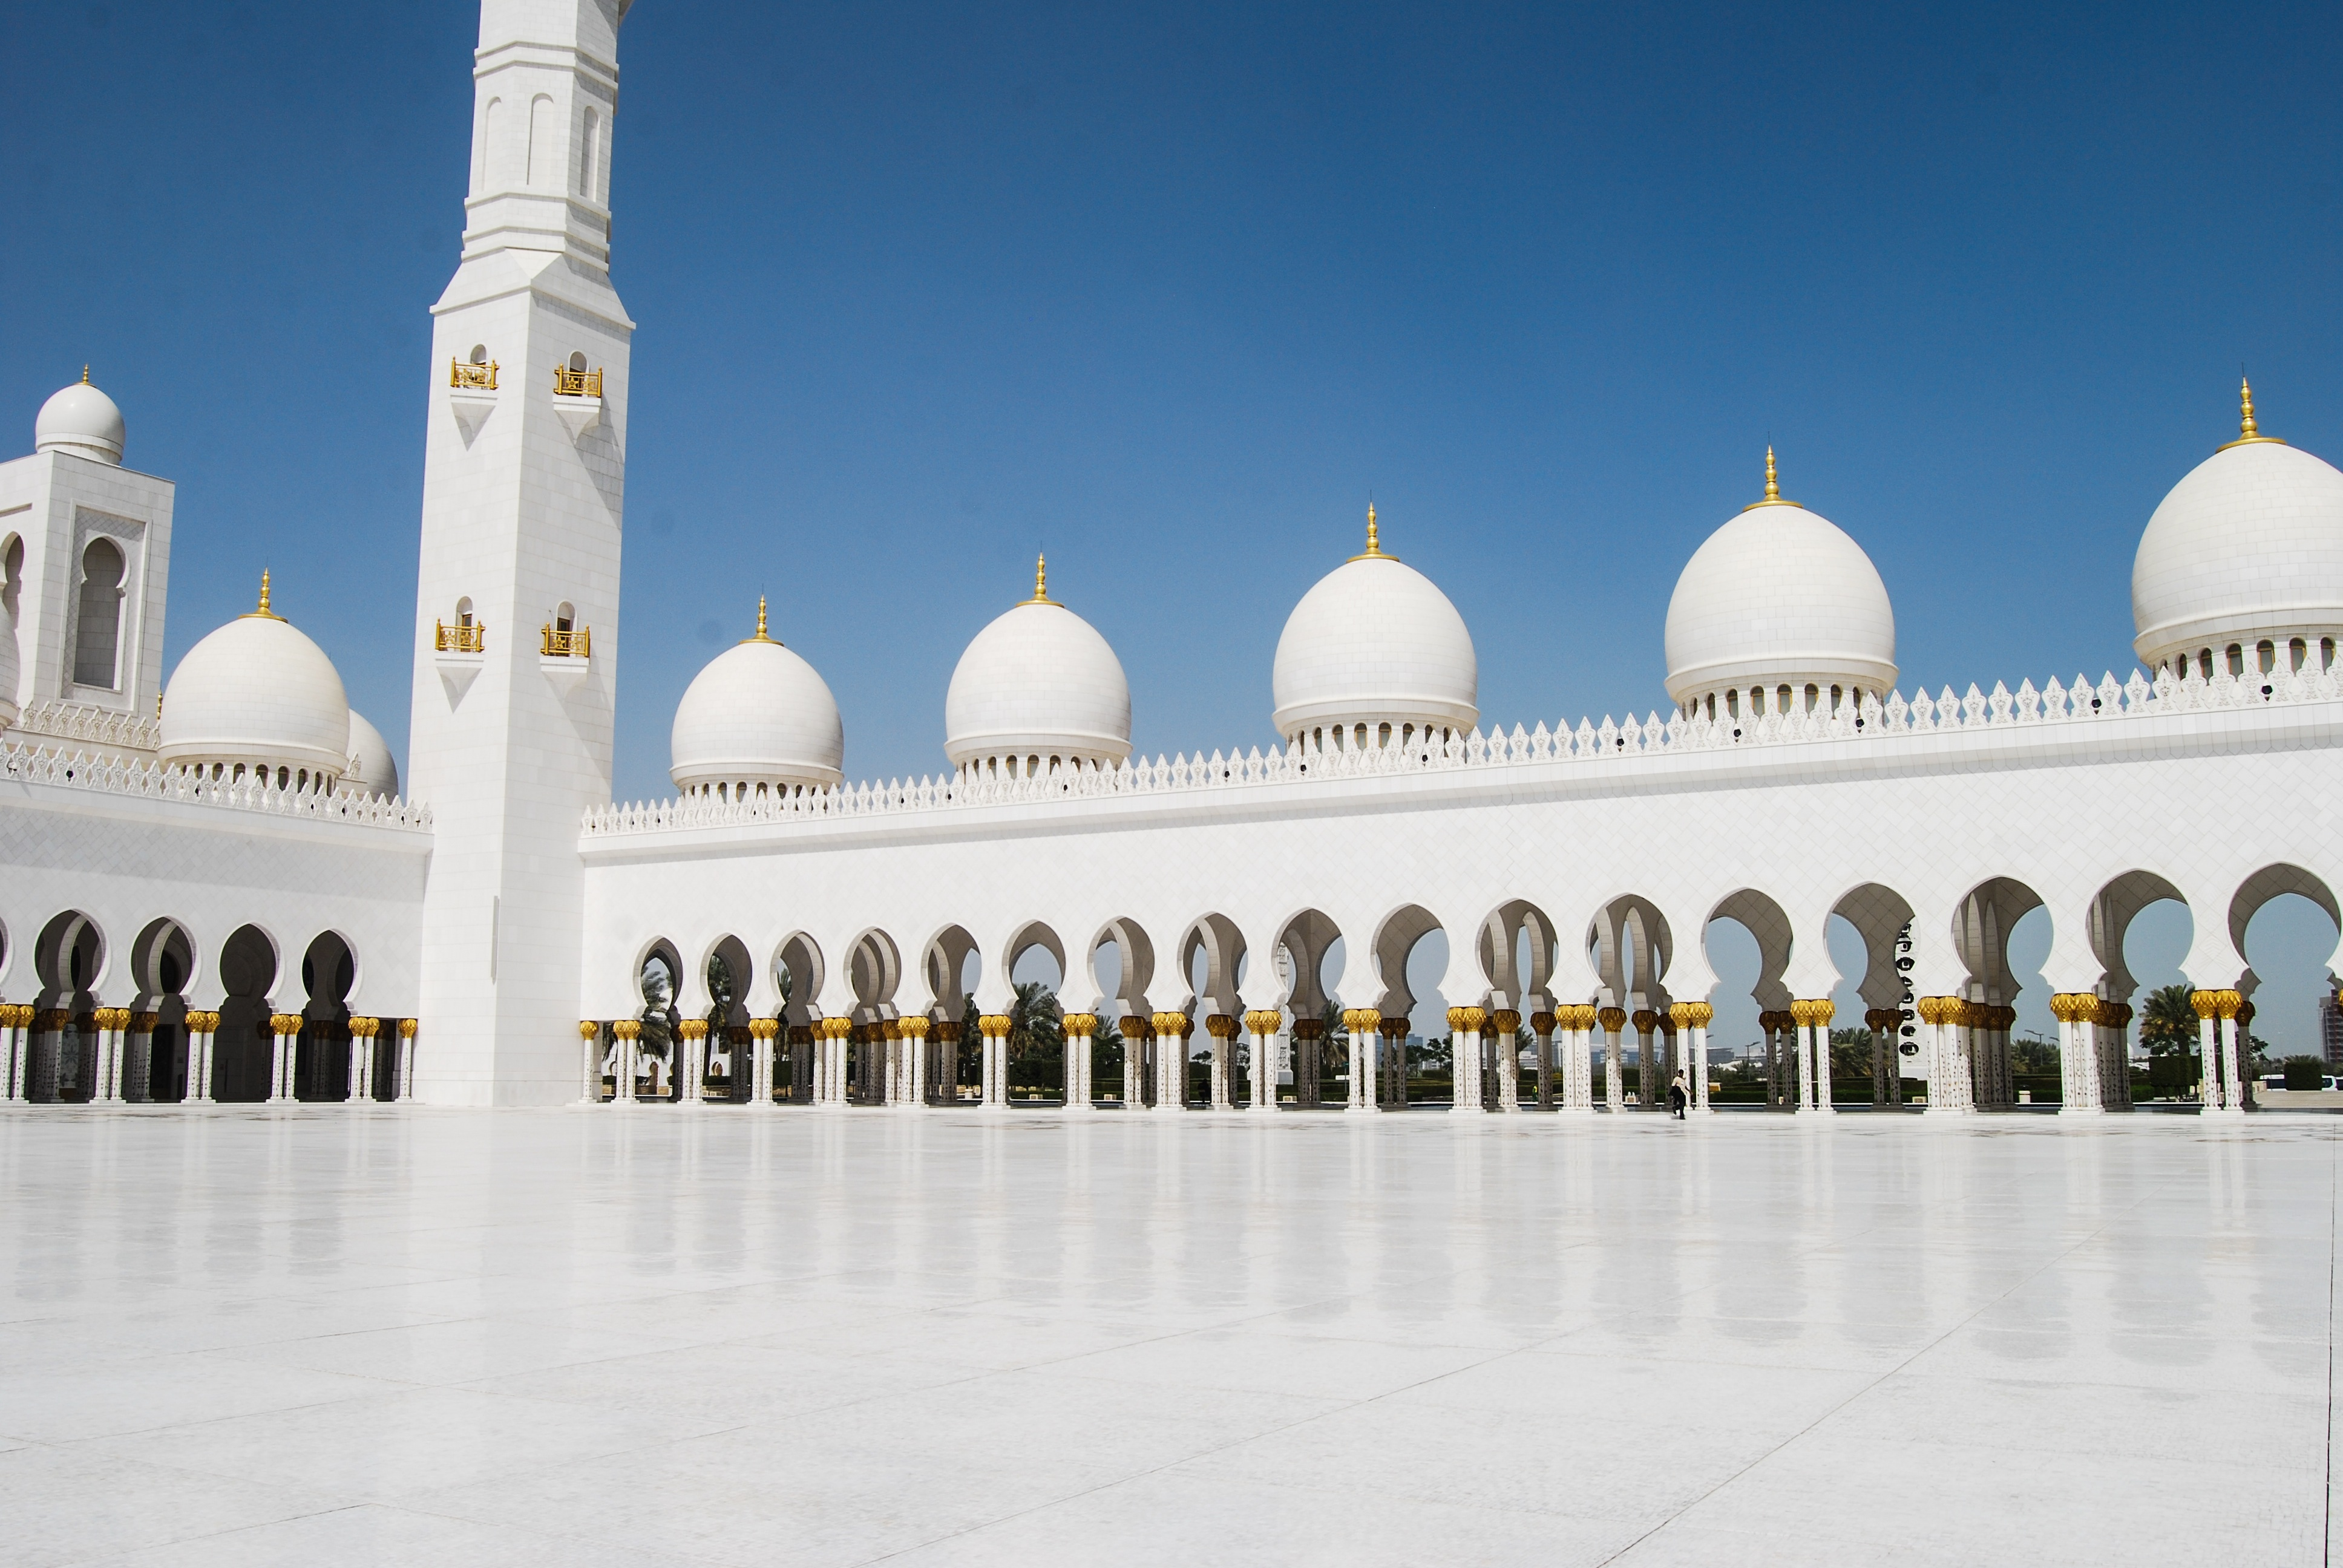 UAE: Sheikh Zayed Grand Mosque (Round 3) | Breezing Through